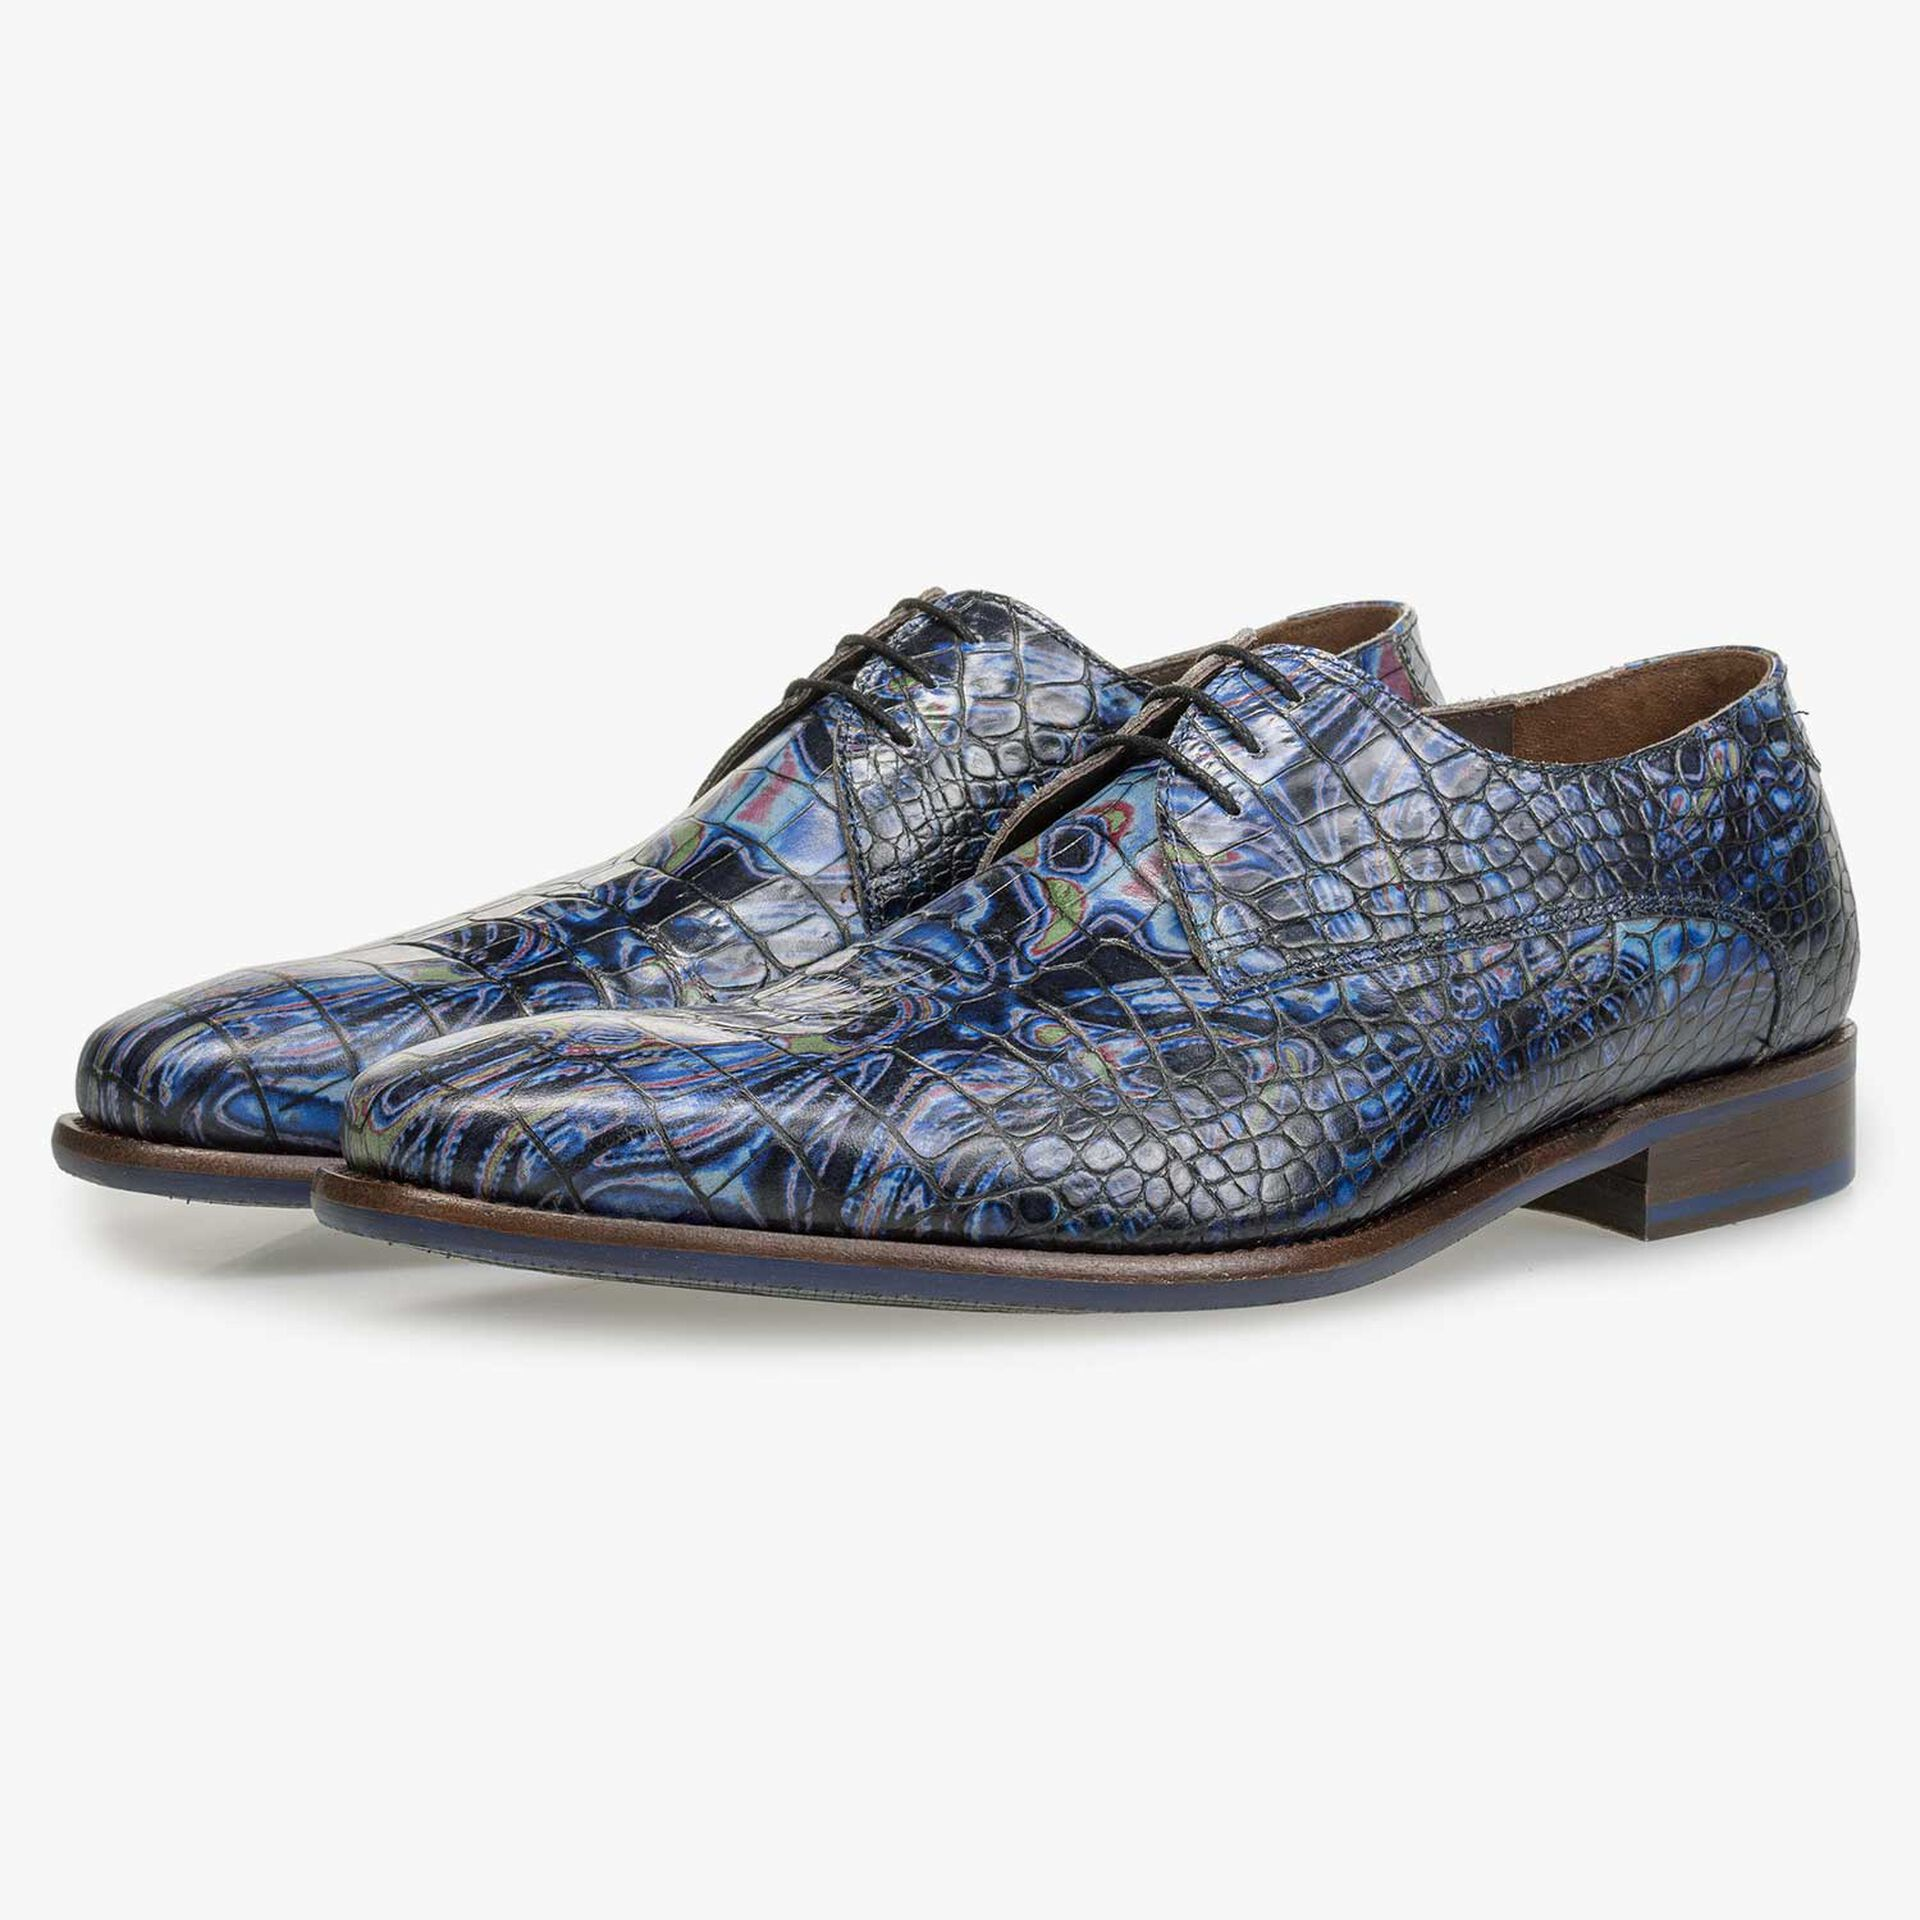 Blue Premium leather lace shoe with croco print